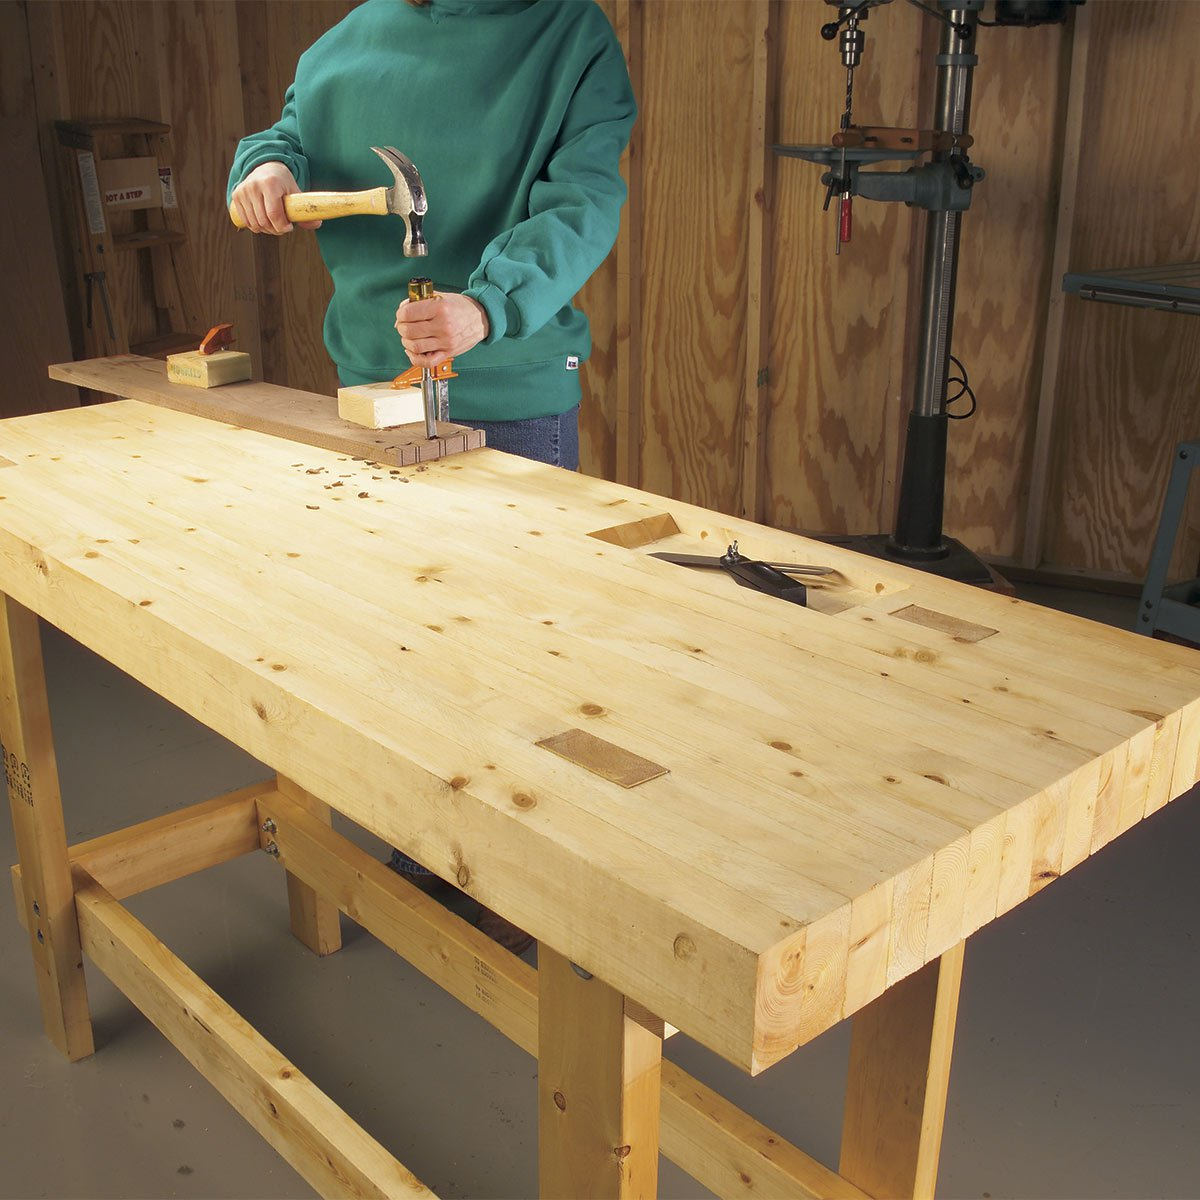 Garage Work Bench: 12 Super-Simple Workbenches You Can Build